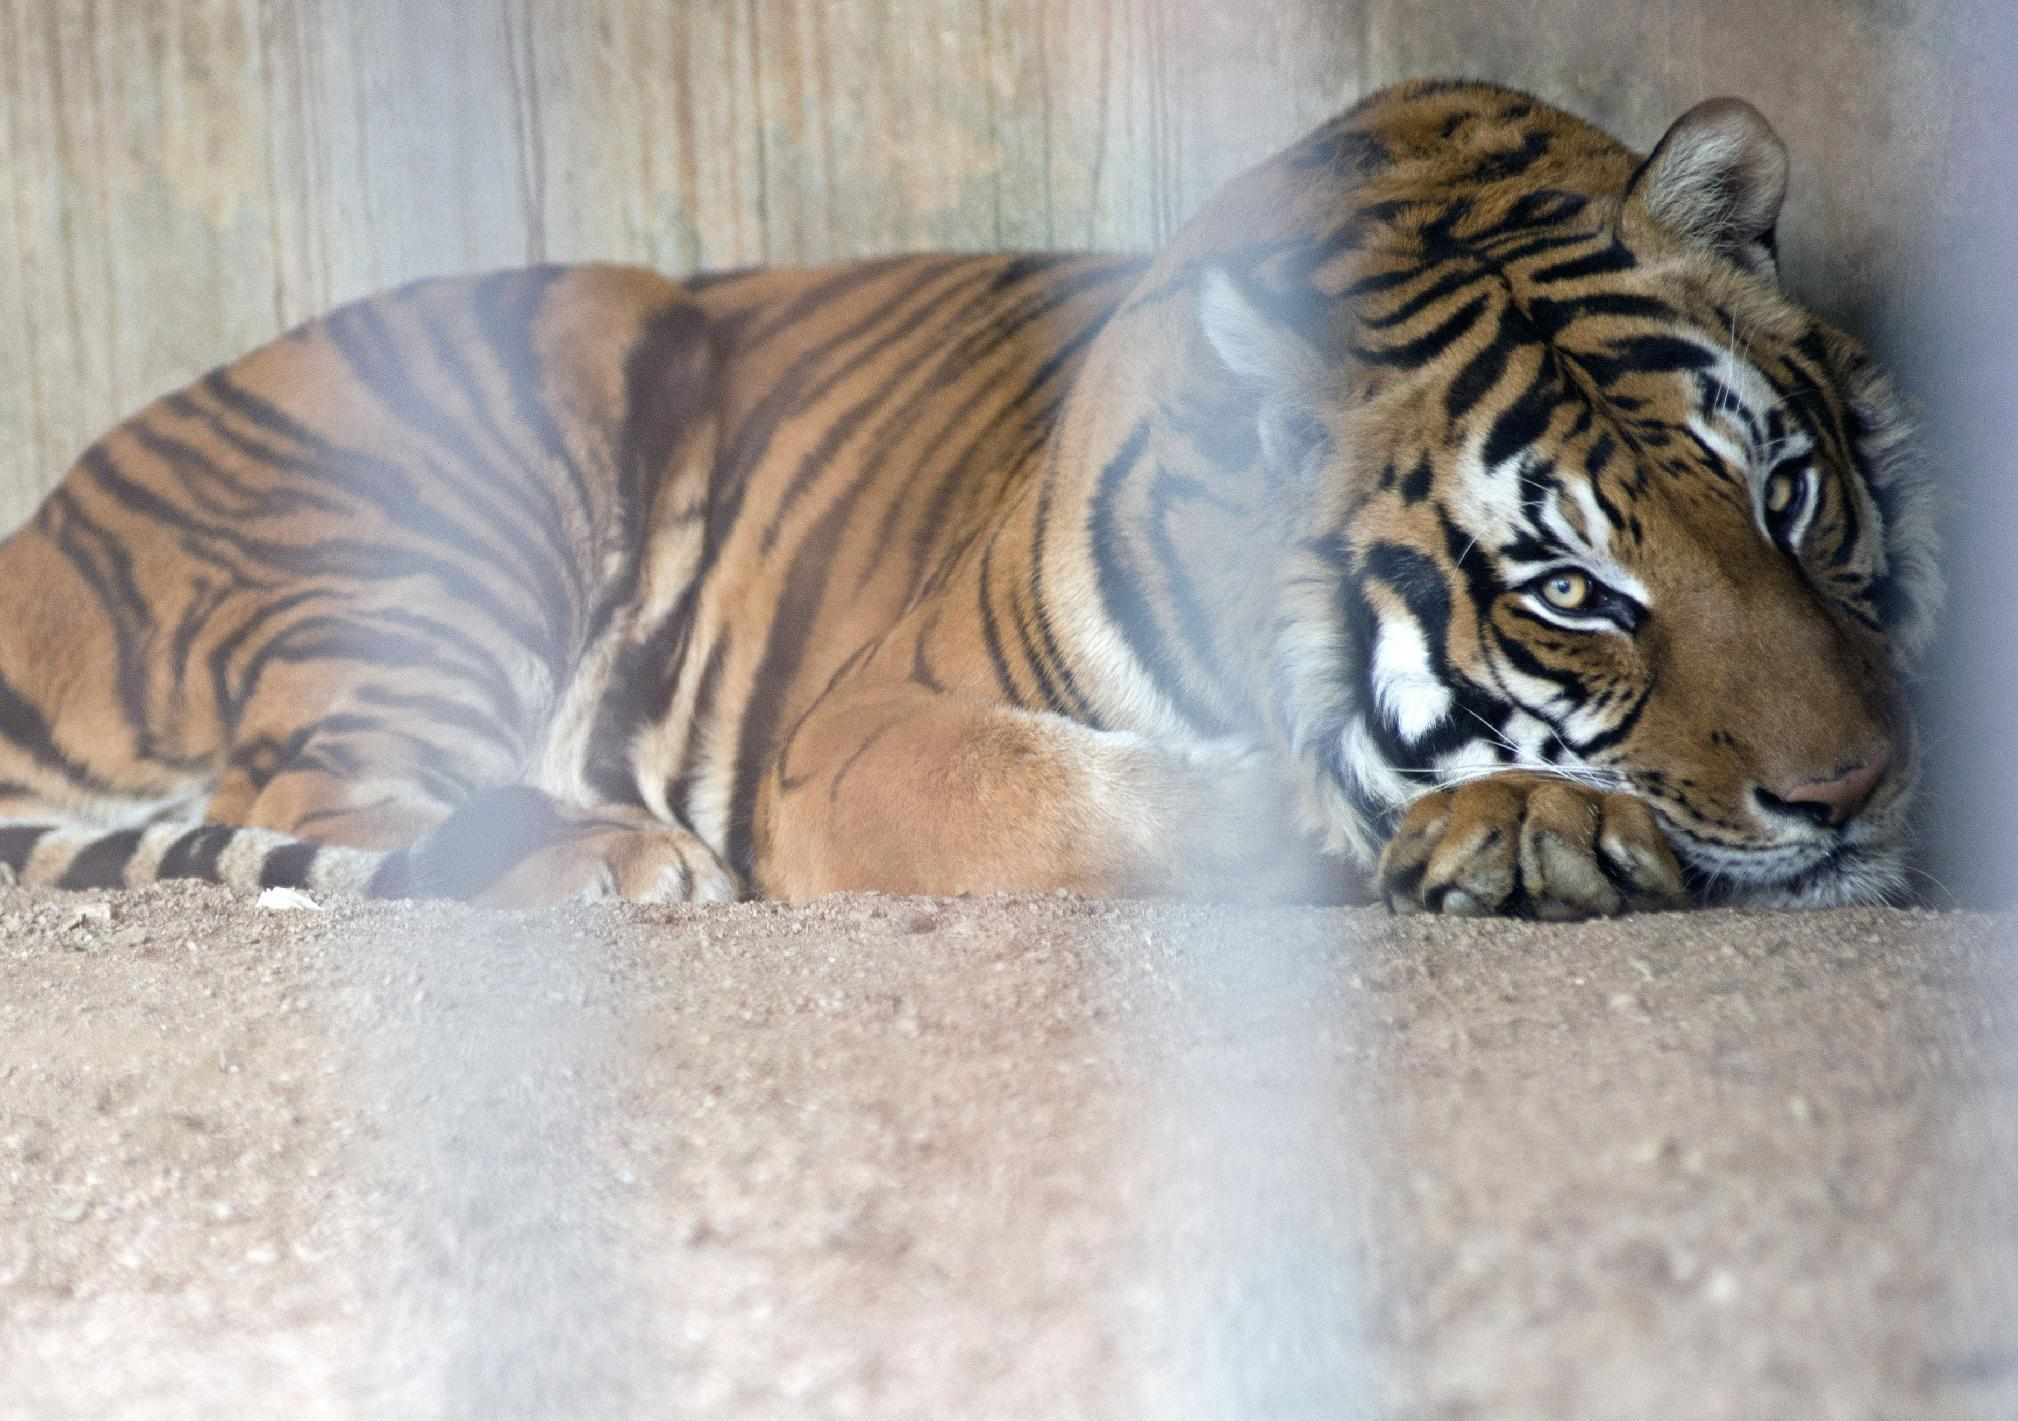 In this Aug. 24, 2013 photo, Hatch, a male tiger that used to work in a circus, rests in his cage at the city zoo in Montevideo, Uruguay. Hatch has lived in a cage since he was traded to the Villa Dolores Zoo which is now looking to send him to a sanctuary in the U.S. There is a surplus of big cats in captivity, according to the World Wildlife Foundation. (AP Photo/Matilde Campodonico)